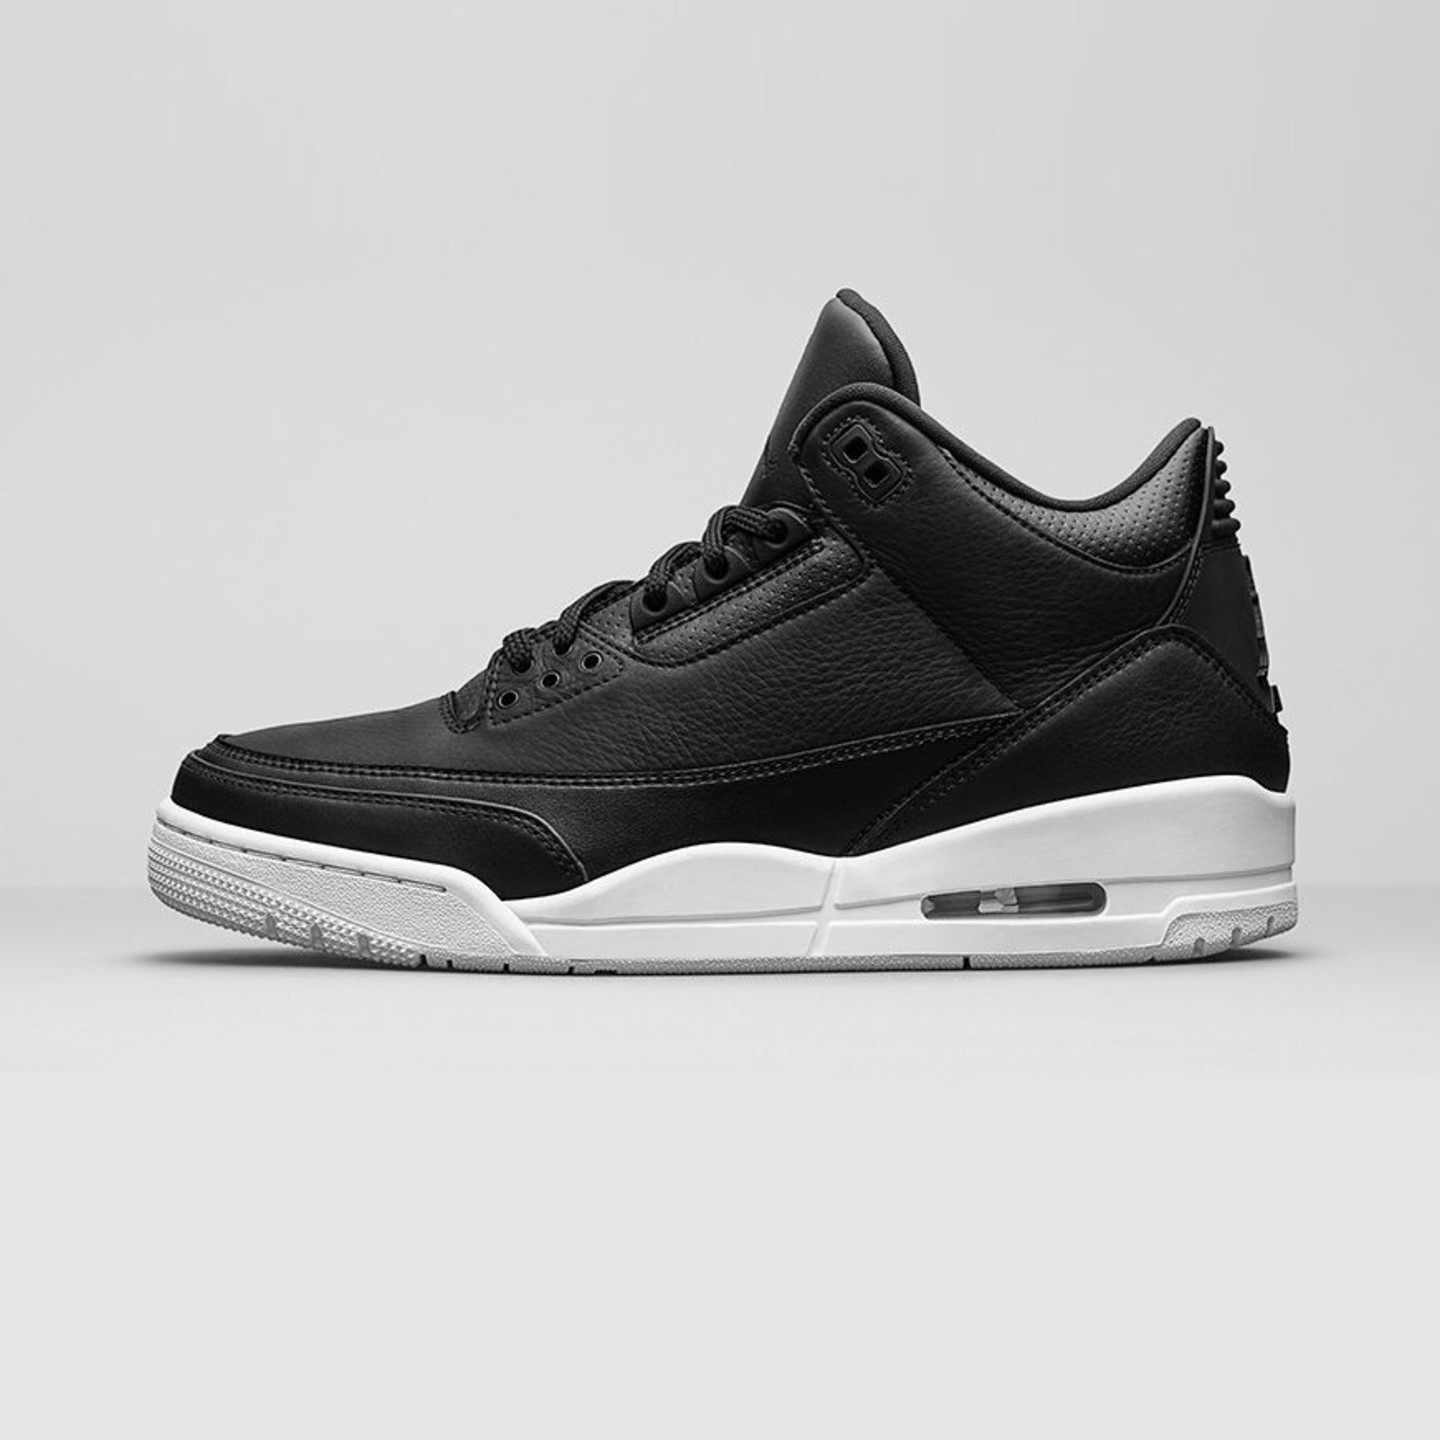 Jordan Air Jordan 3 Retro 'Cyber Monday' Black / White 136064-020-47.5